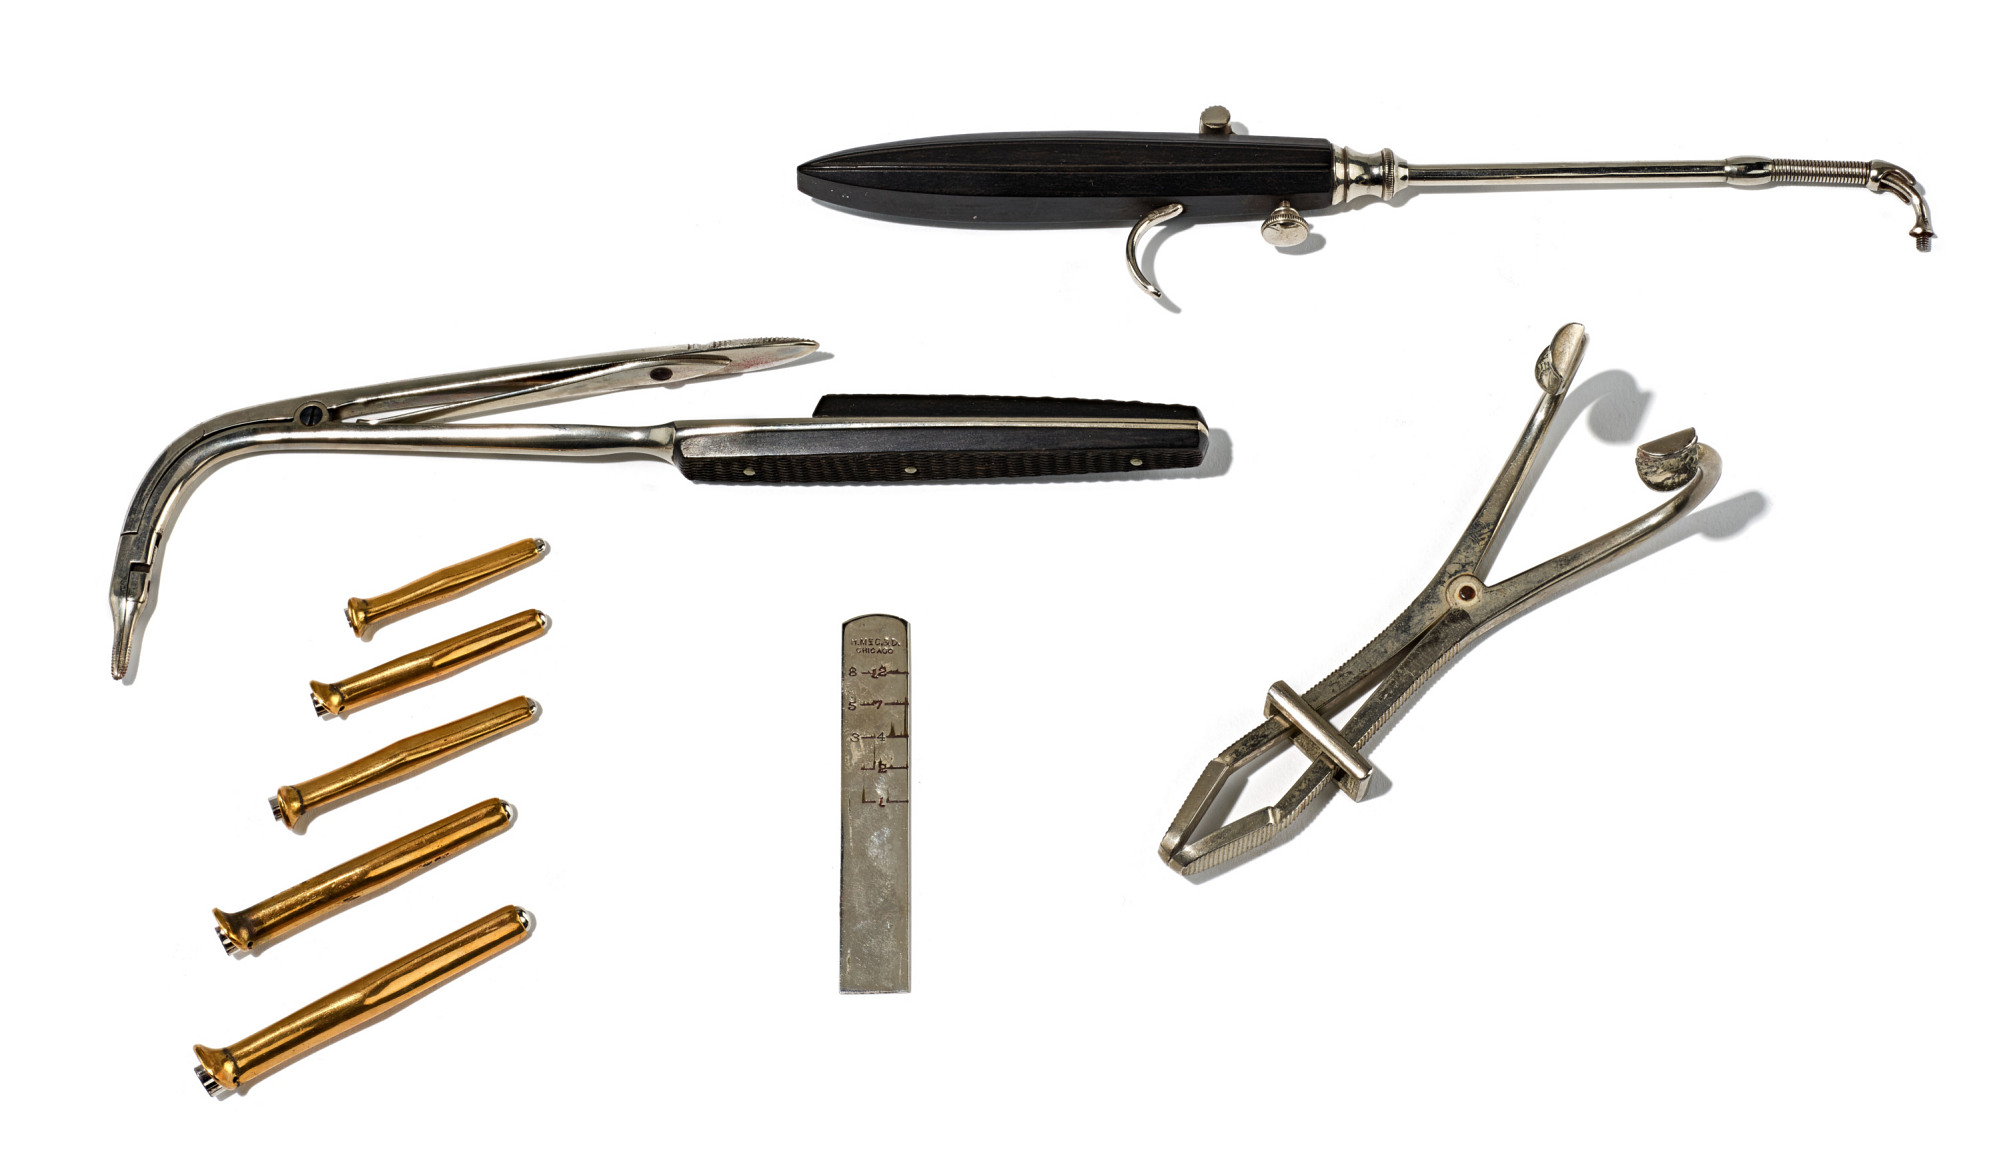 Intubation kit sold by Haussmann, McComb & Dunn